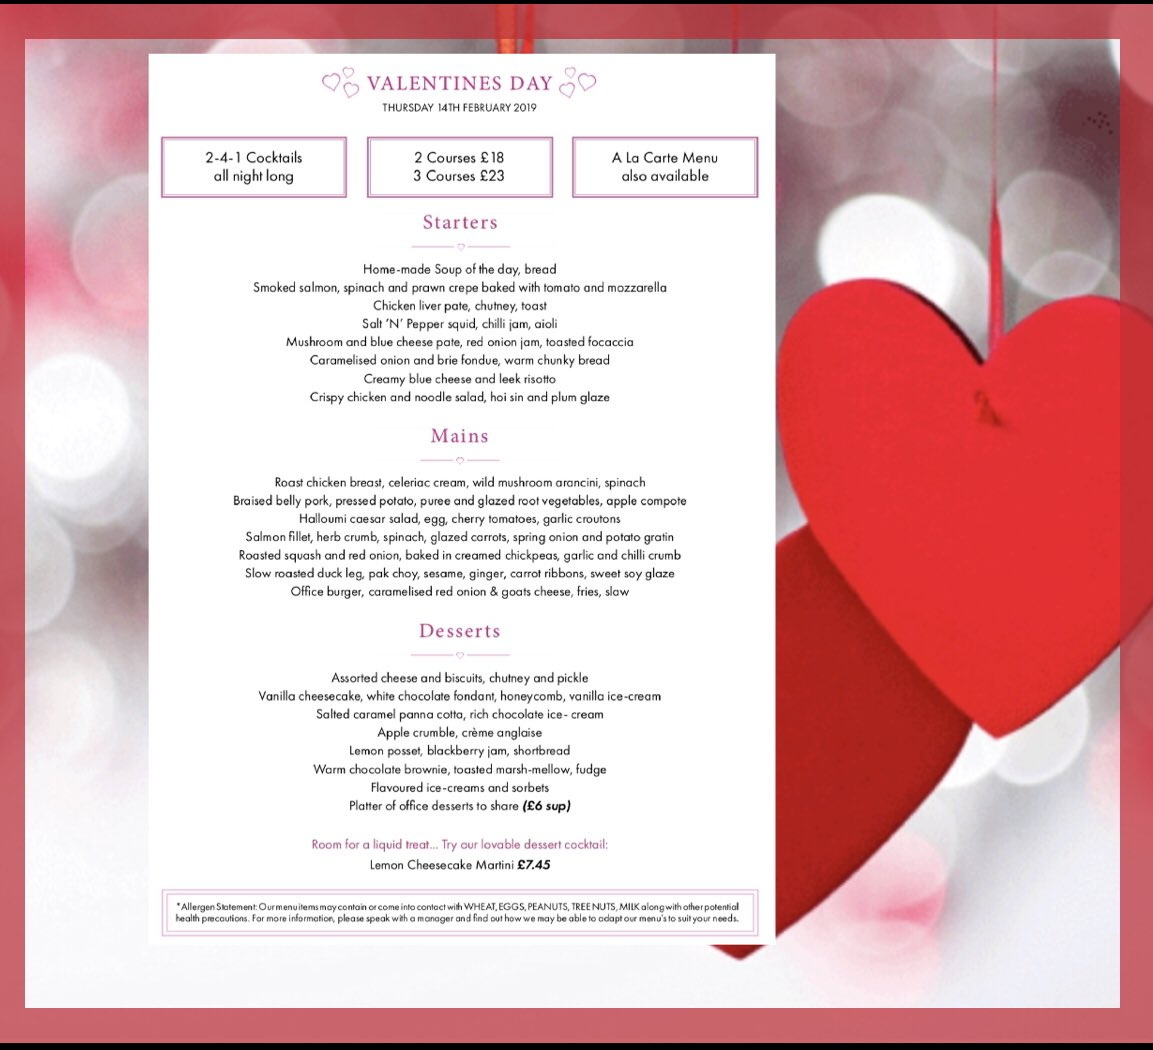 The Office Bar And Restaurant's photo on #Valentinesweek